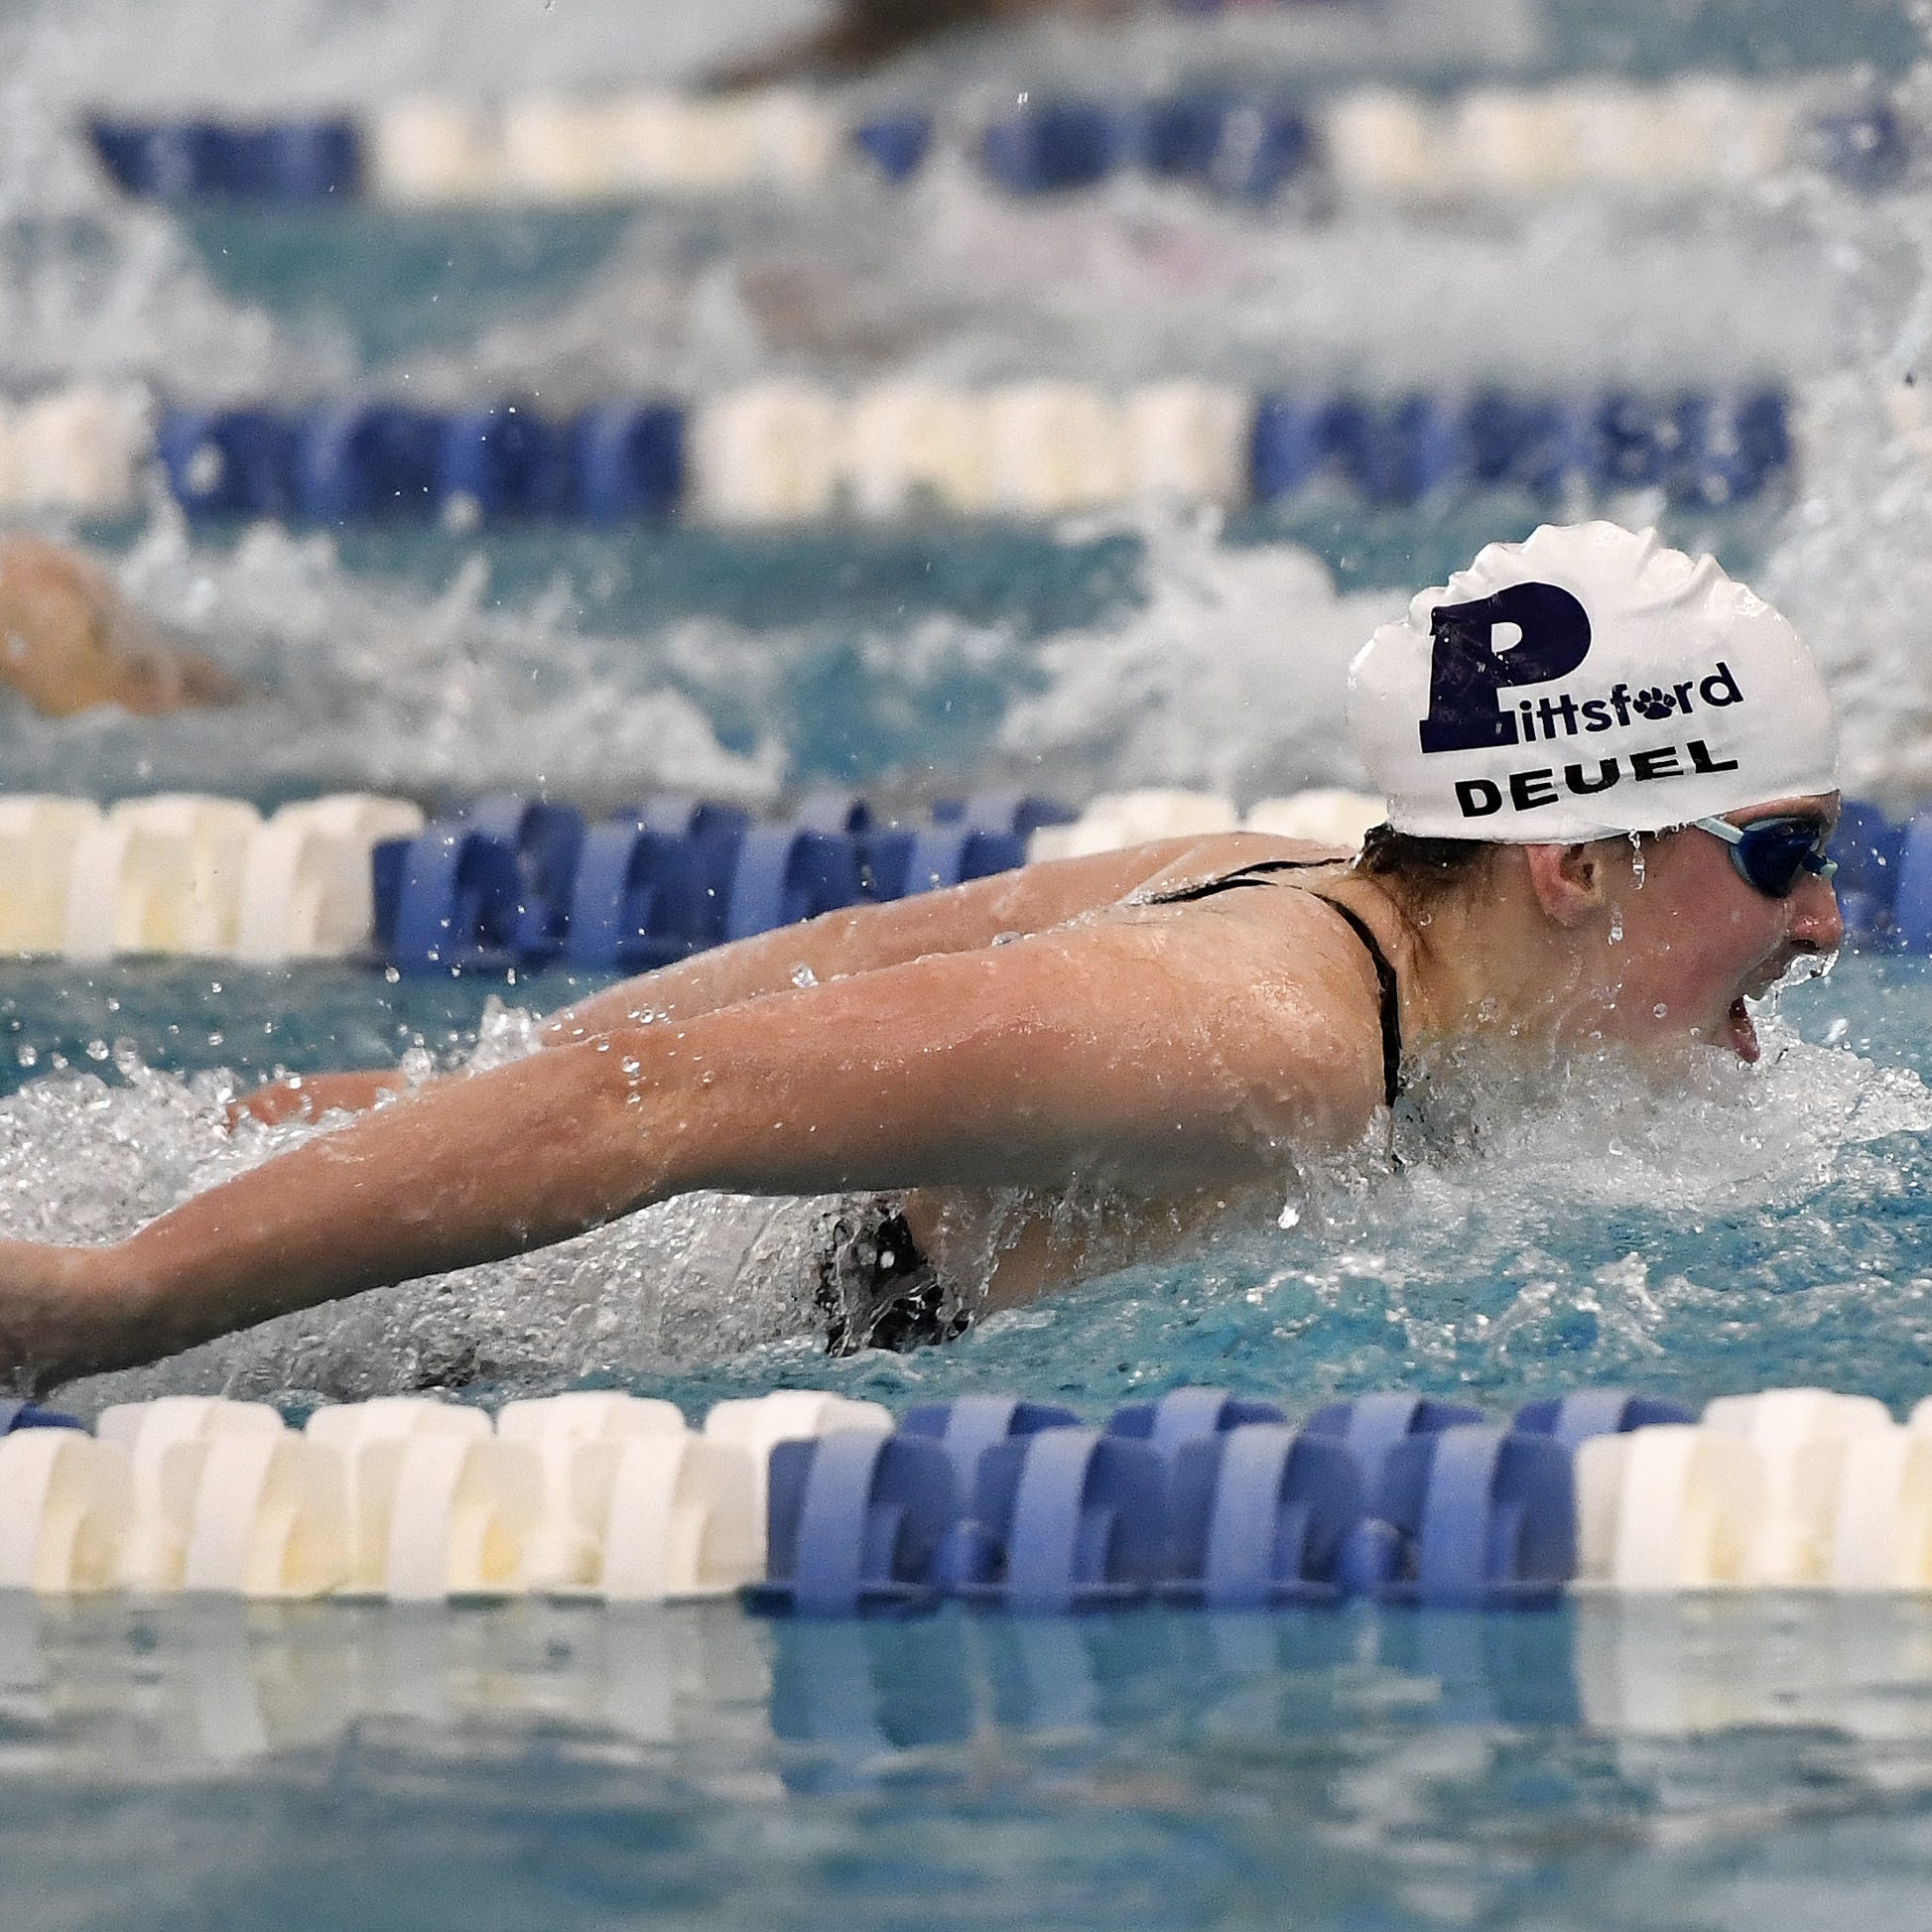 Pittsford swimmer Megan Deuel now a nine-time state champion